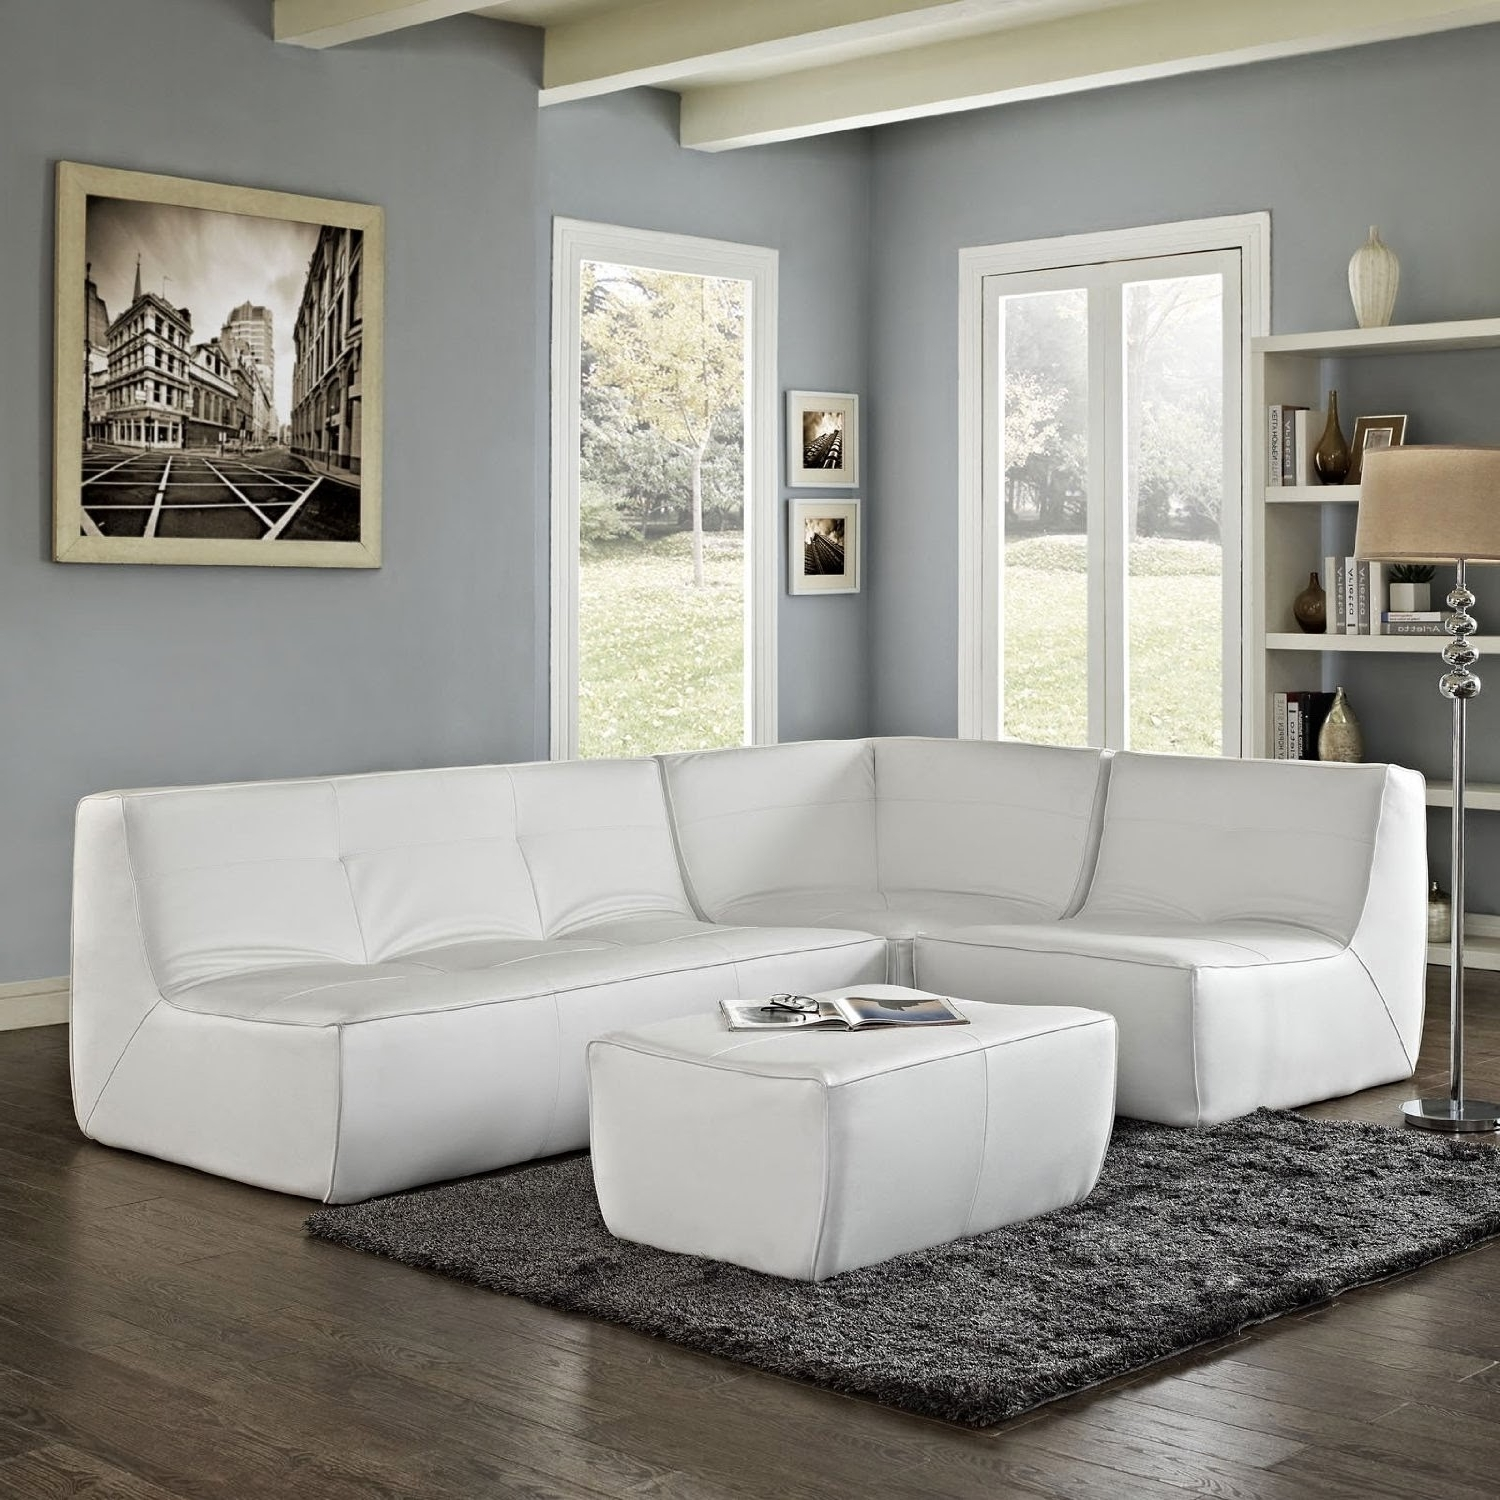 Most Current Sectional Modern Sofa Interior White Button Leather Furniture Pertaining To Vancouver Bc Canada Sectional Sofas (View 20 of 20)